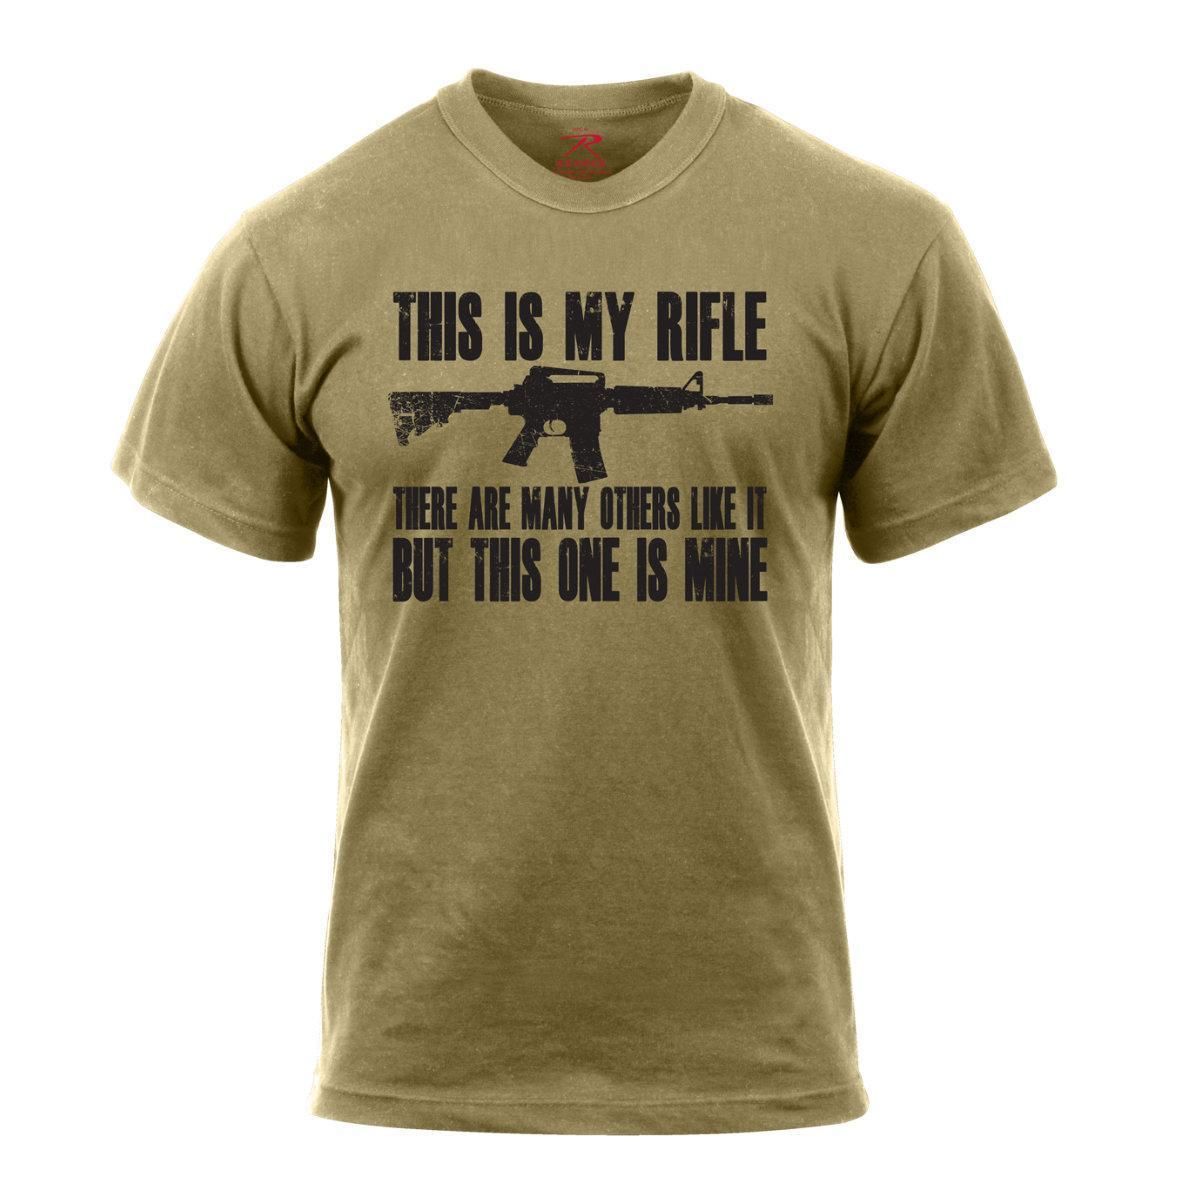 2019 Fashion Summer Style Rothco 'This Is My Rifle', Military, 2nd Amendment T-Shirt, Coyote Brown Tee Shirt